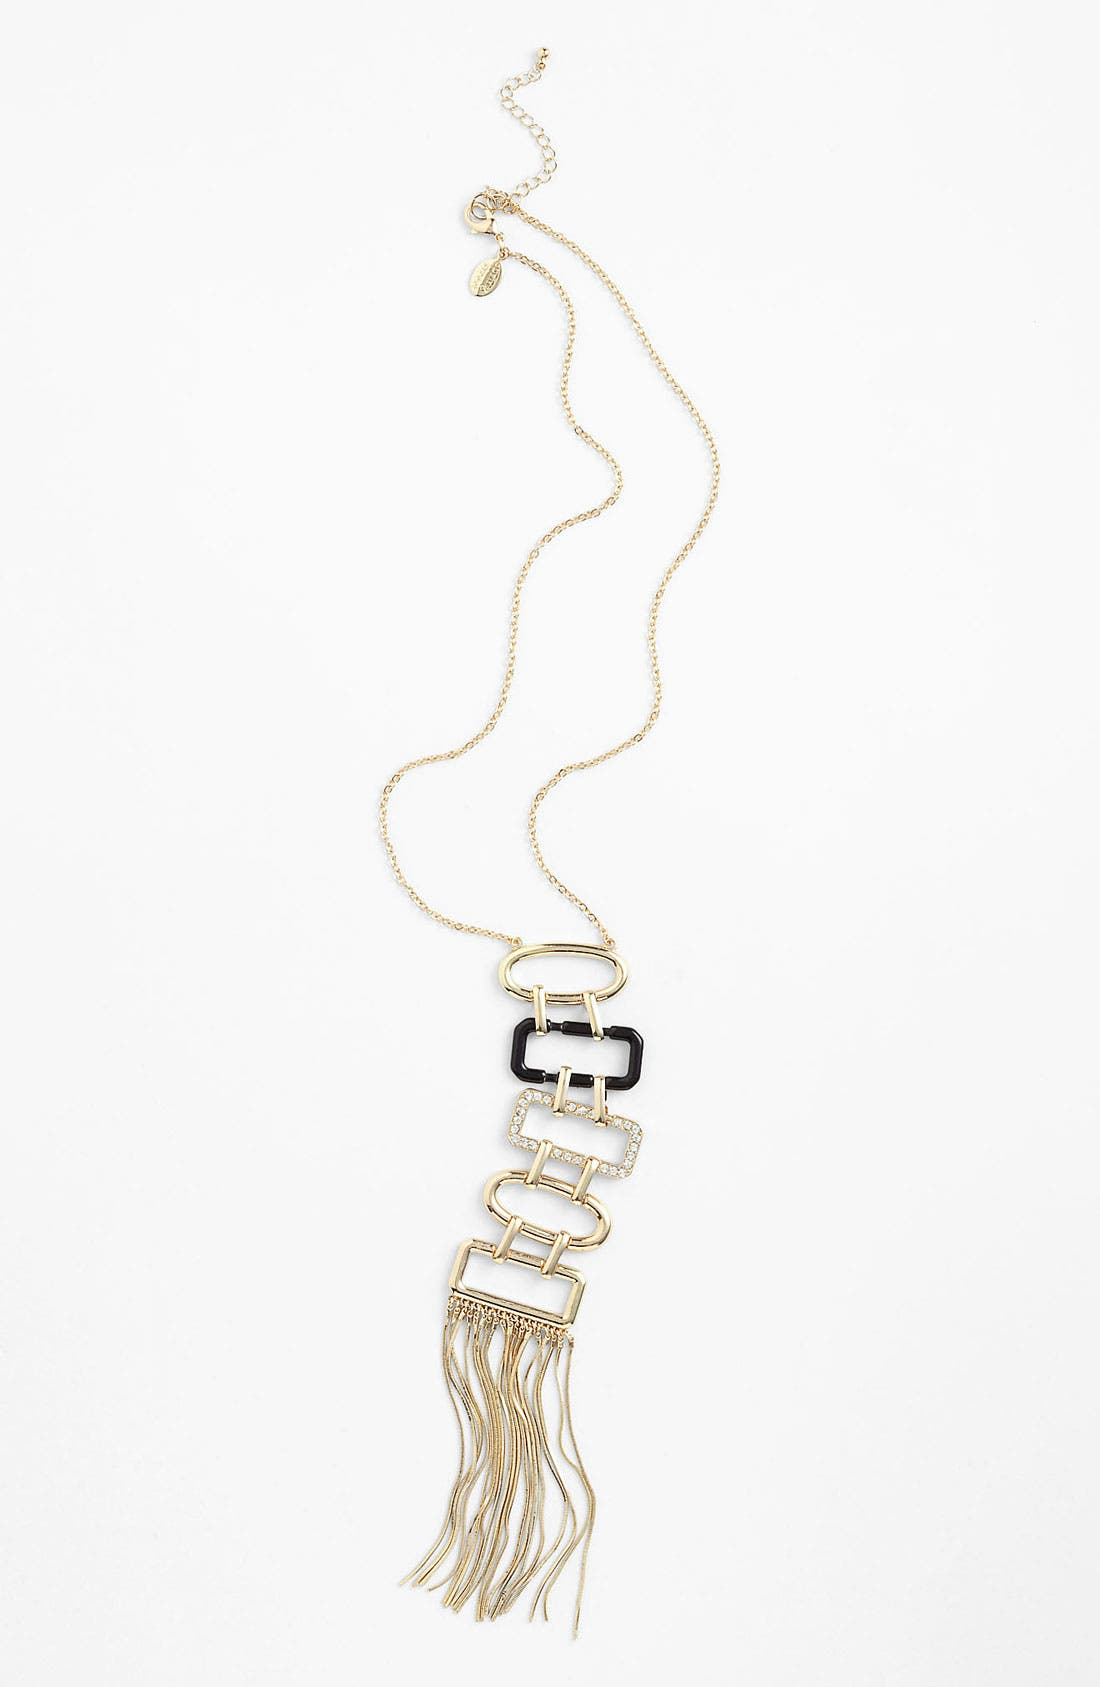 Long Tassel Pendant Necklace,                         Main,                         color, Gold With Black